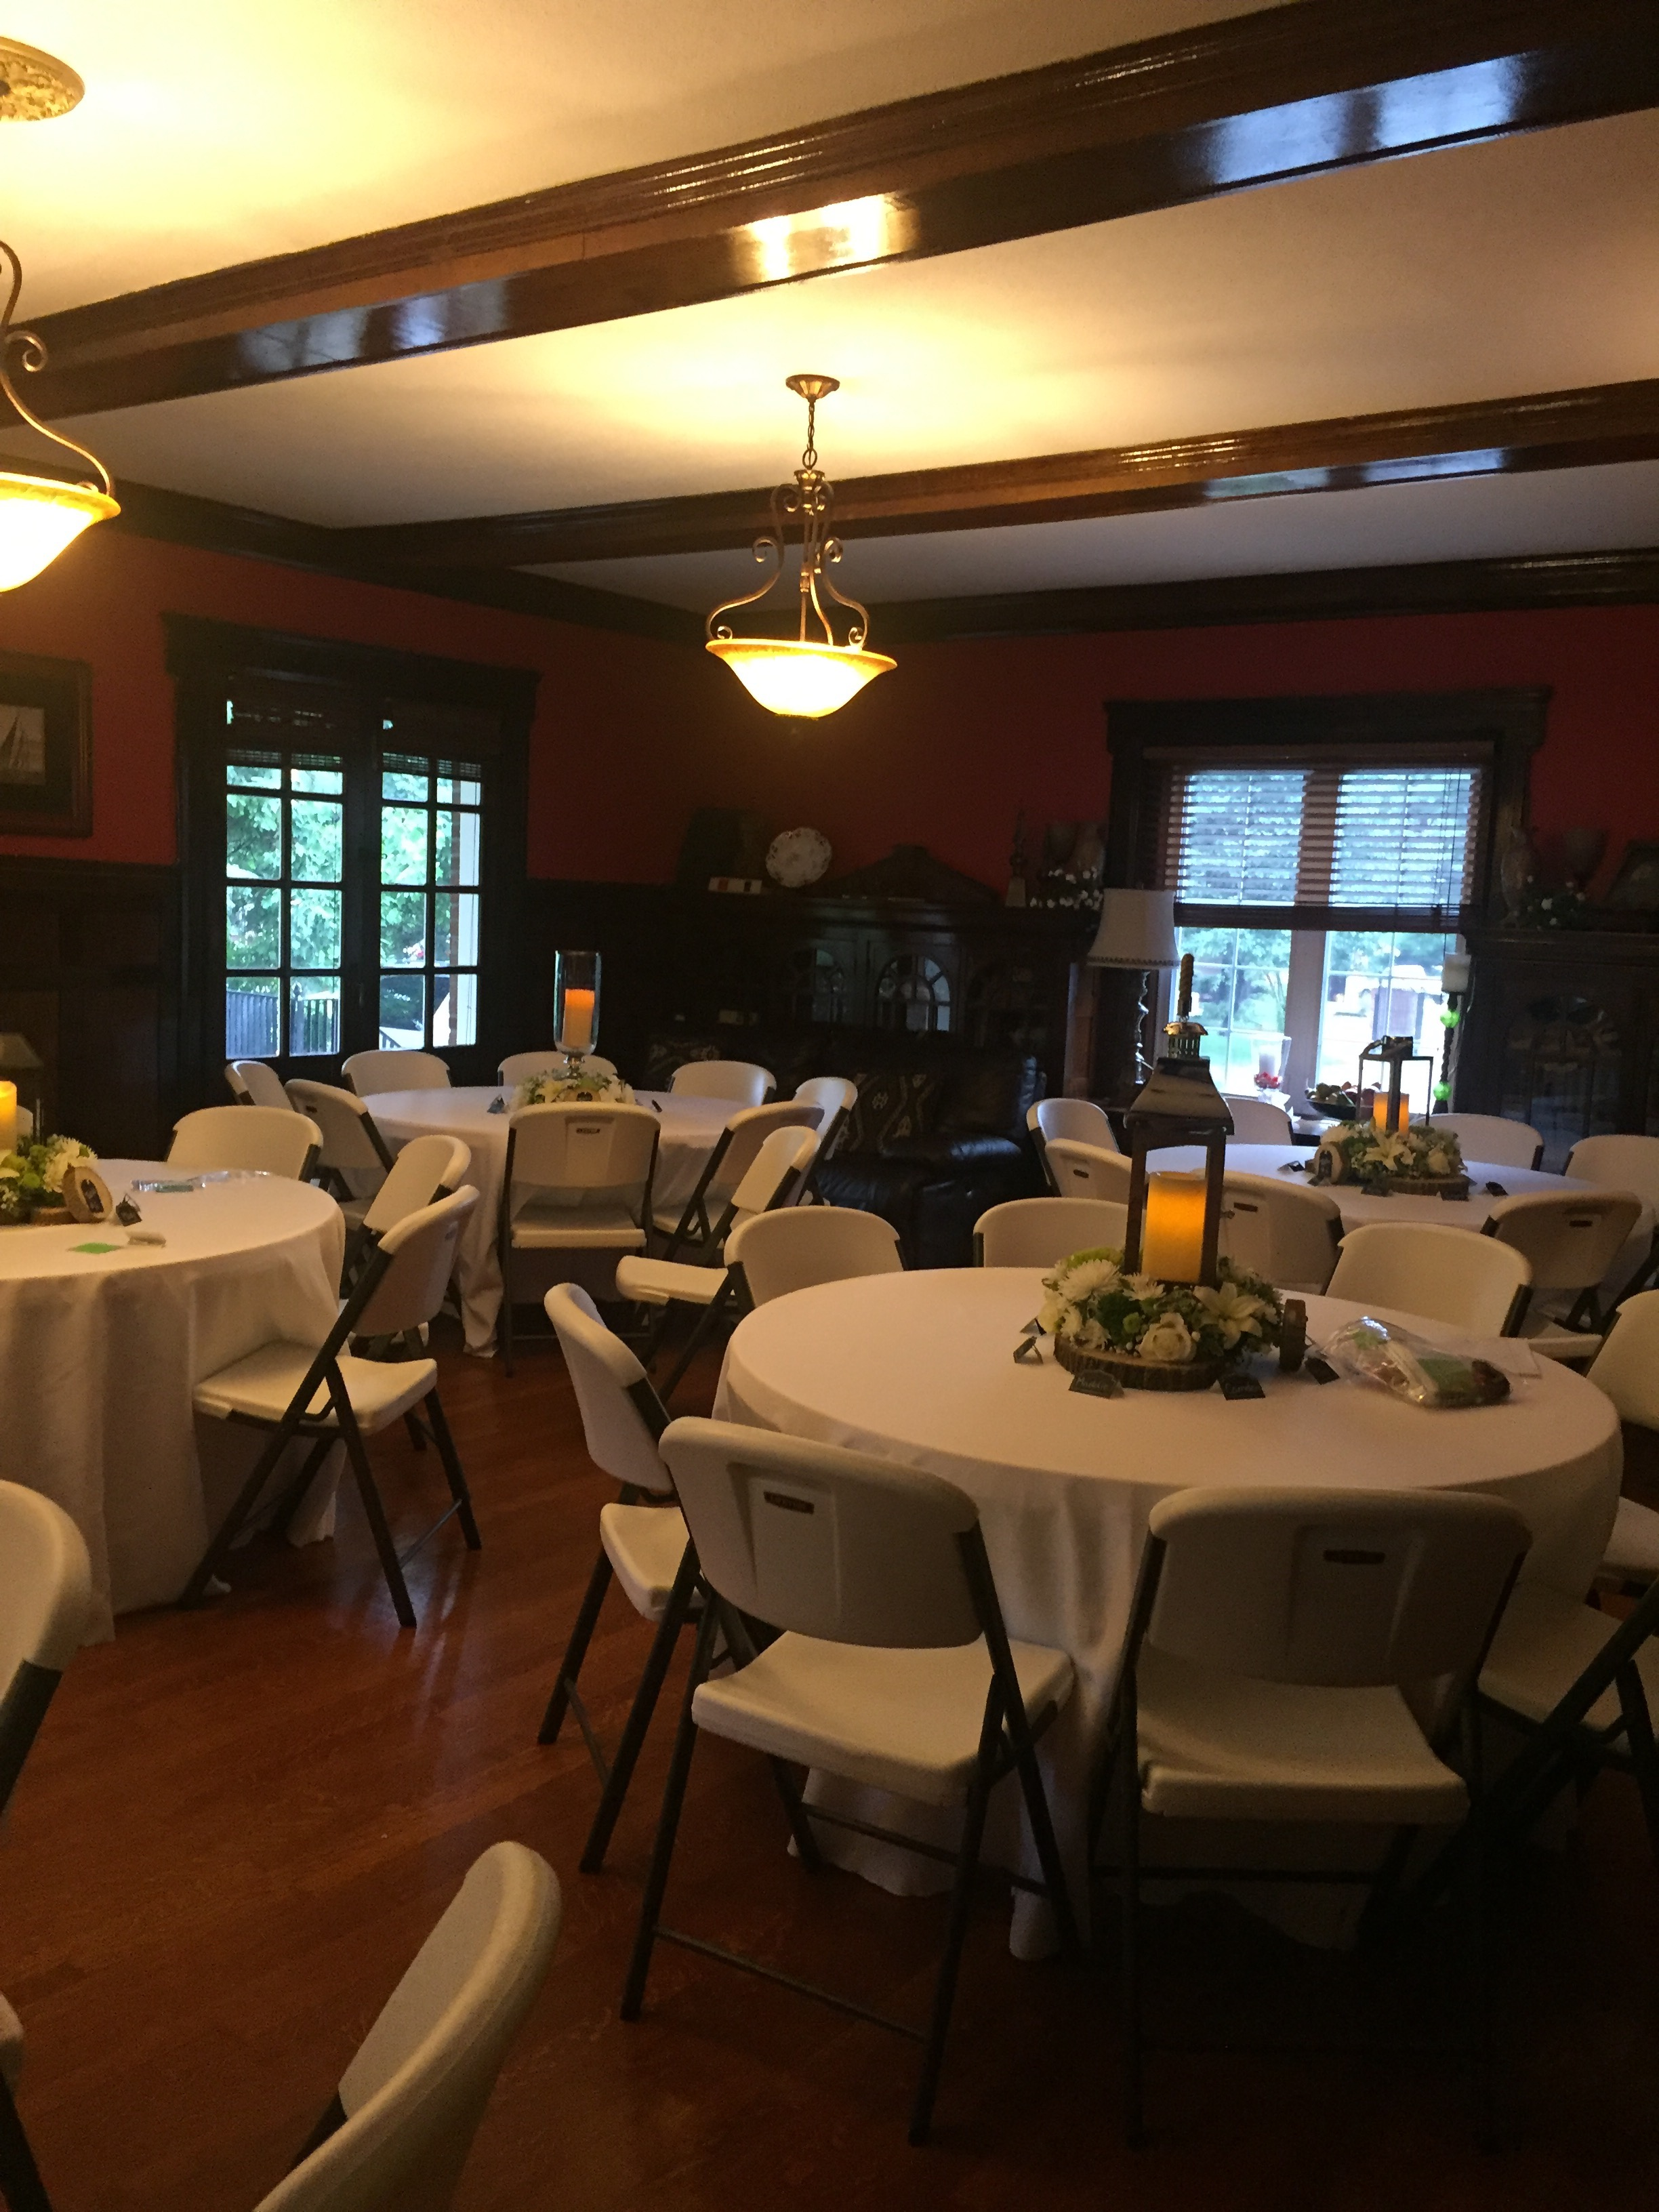 Banquet Seating on First Floor | Indoor Event